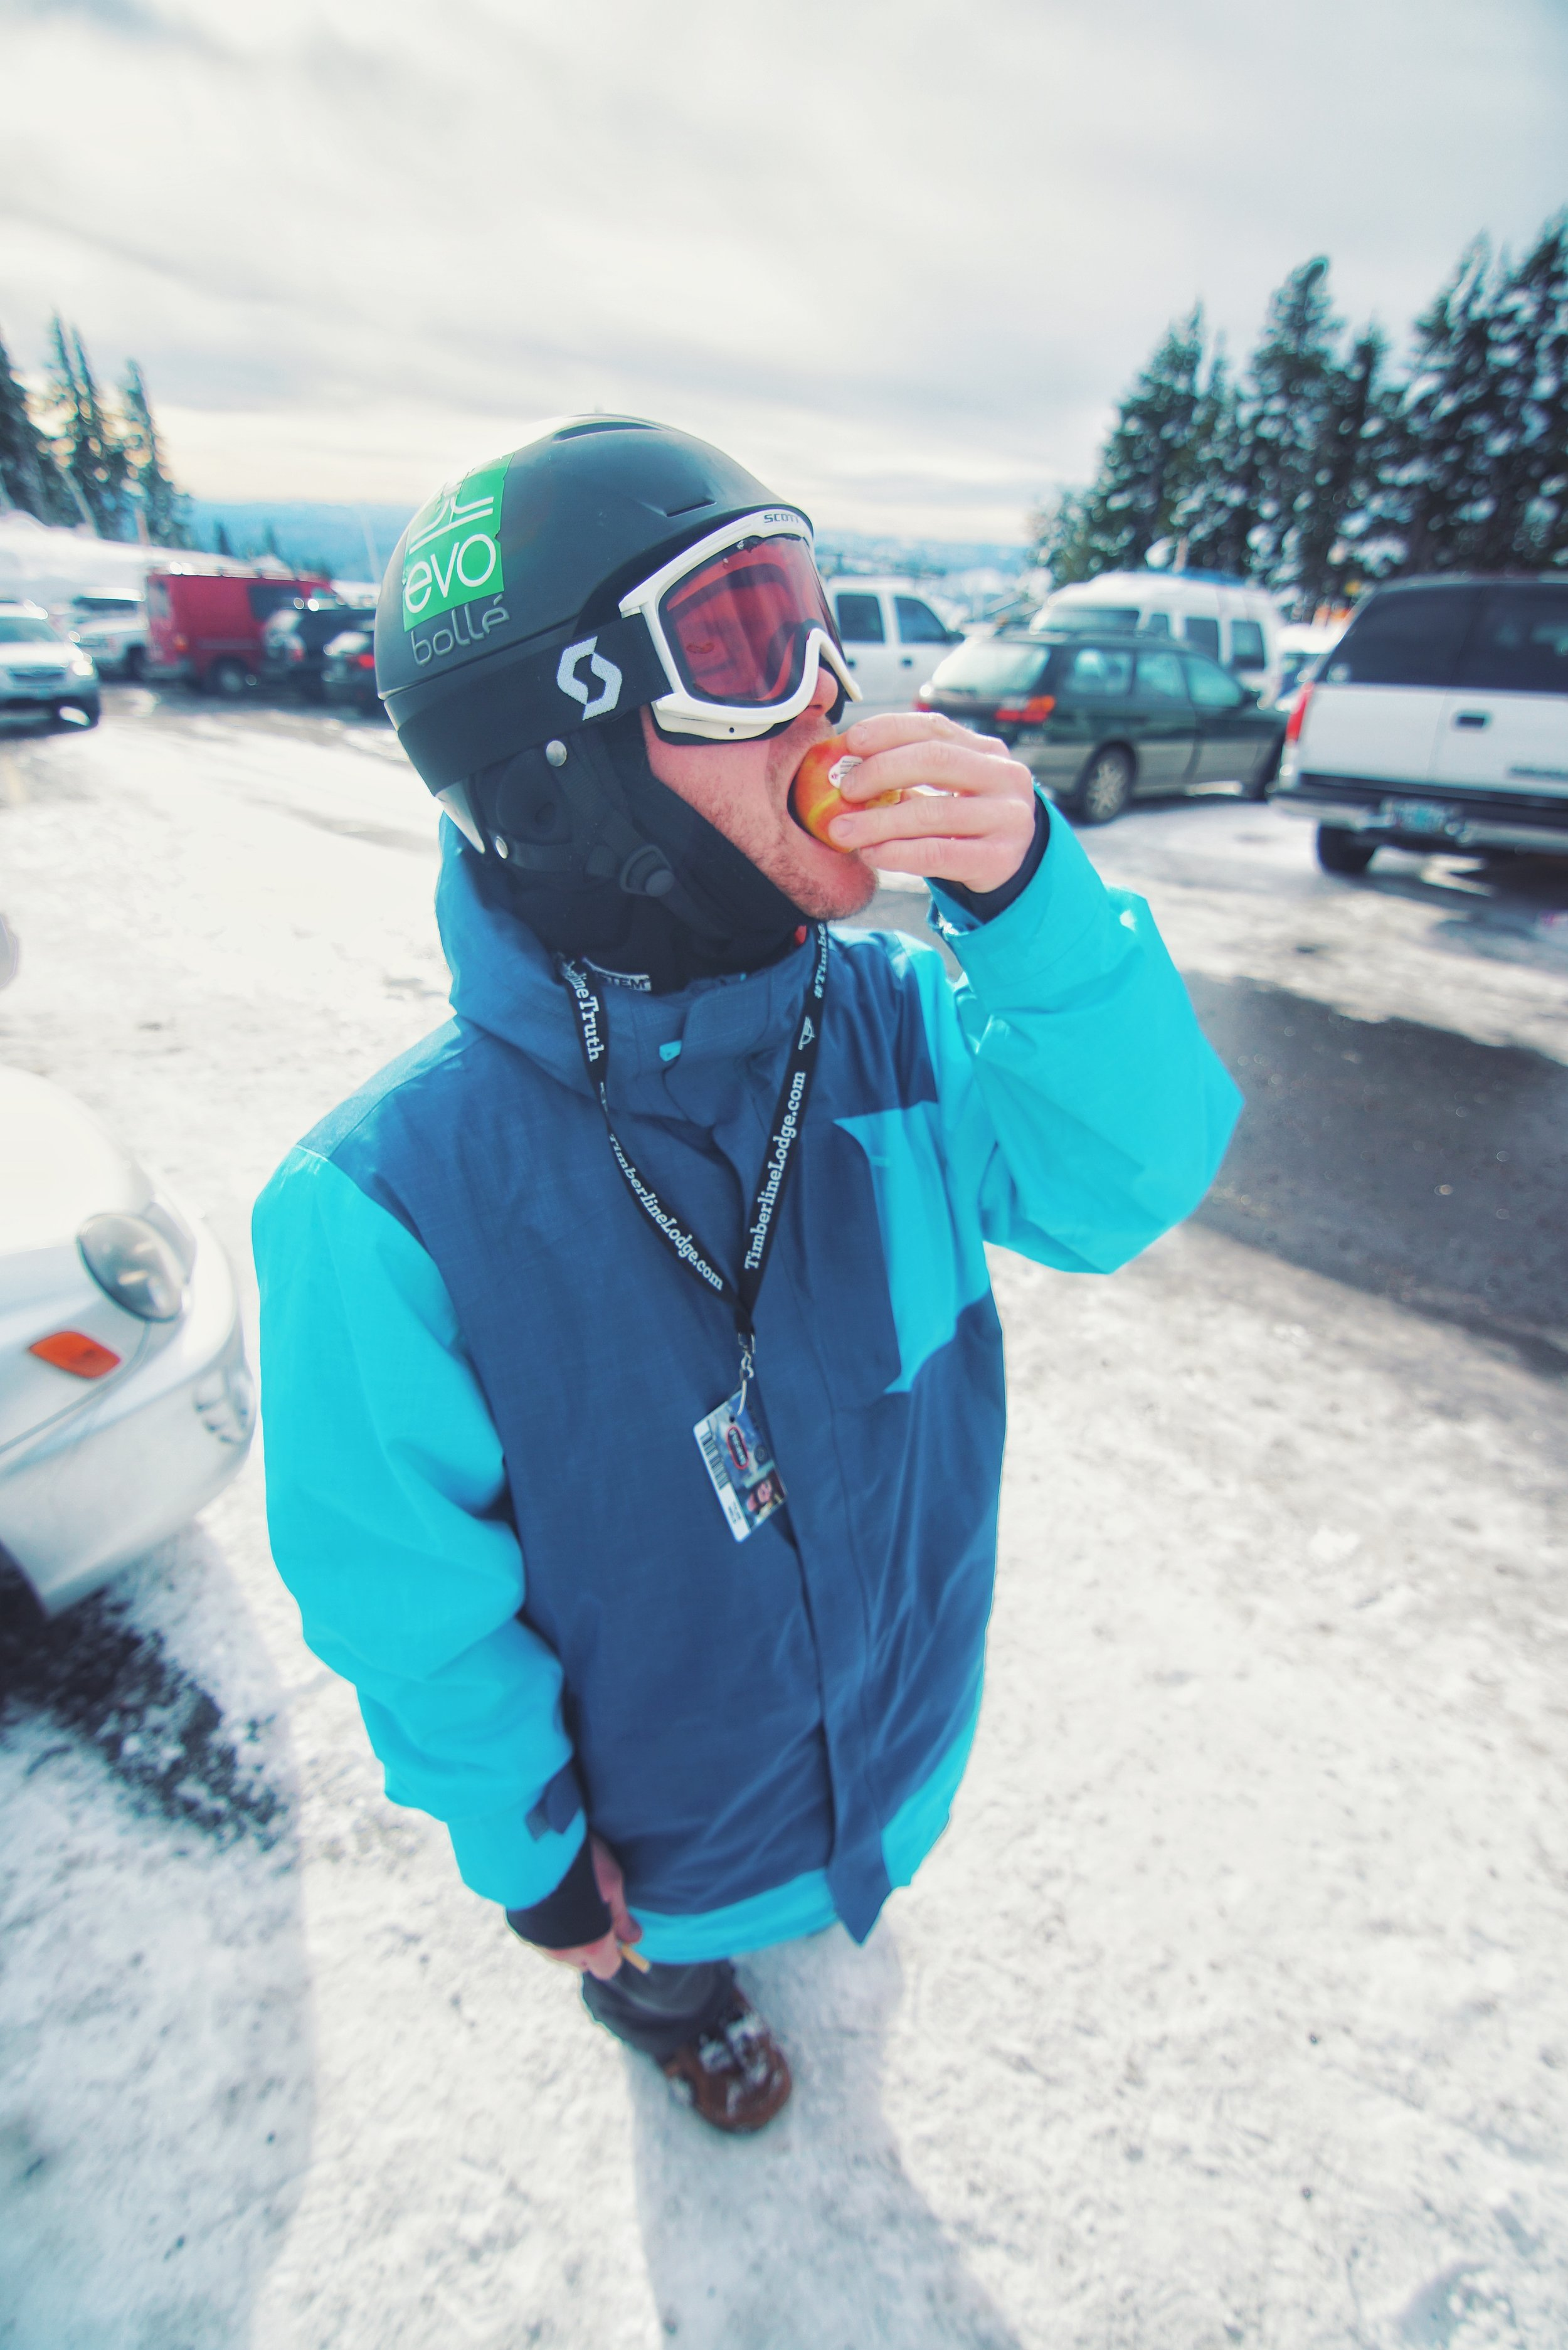 Tyler Weld - Fueling up for the gnar.